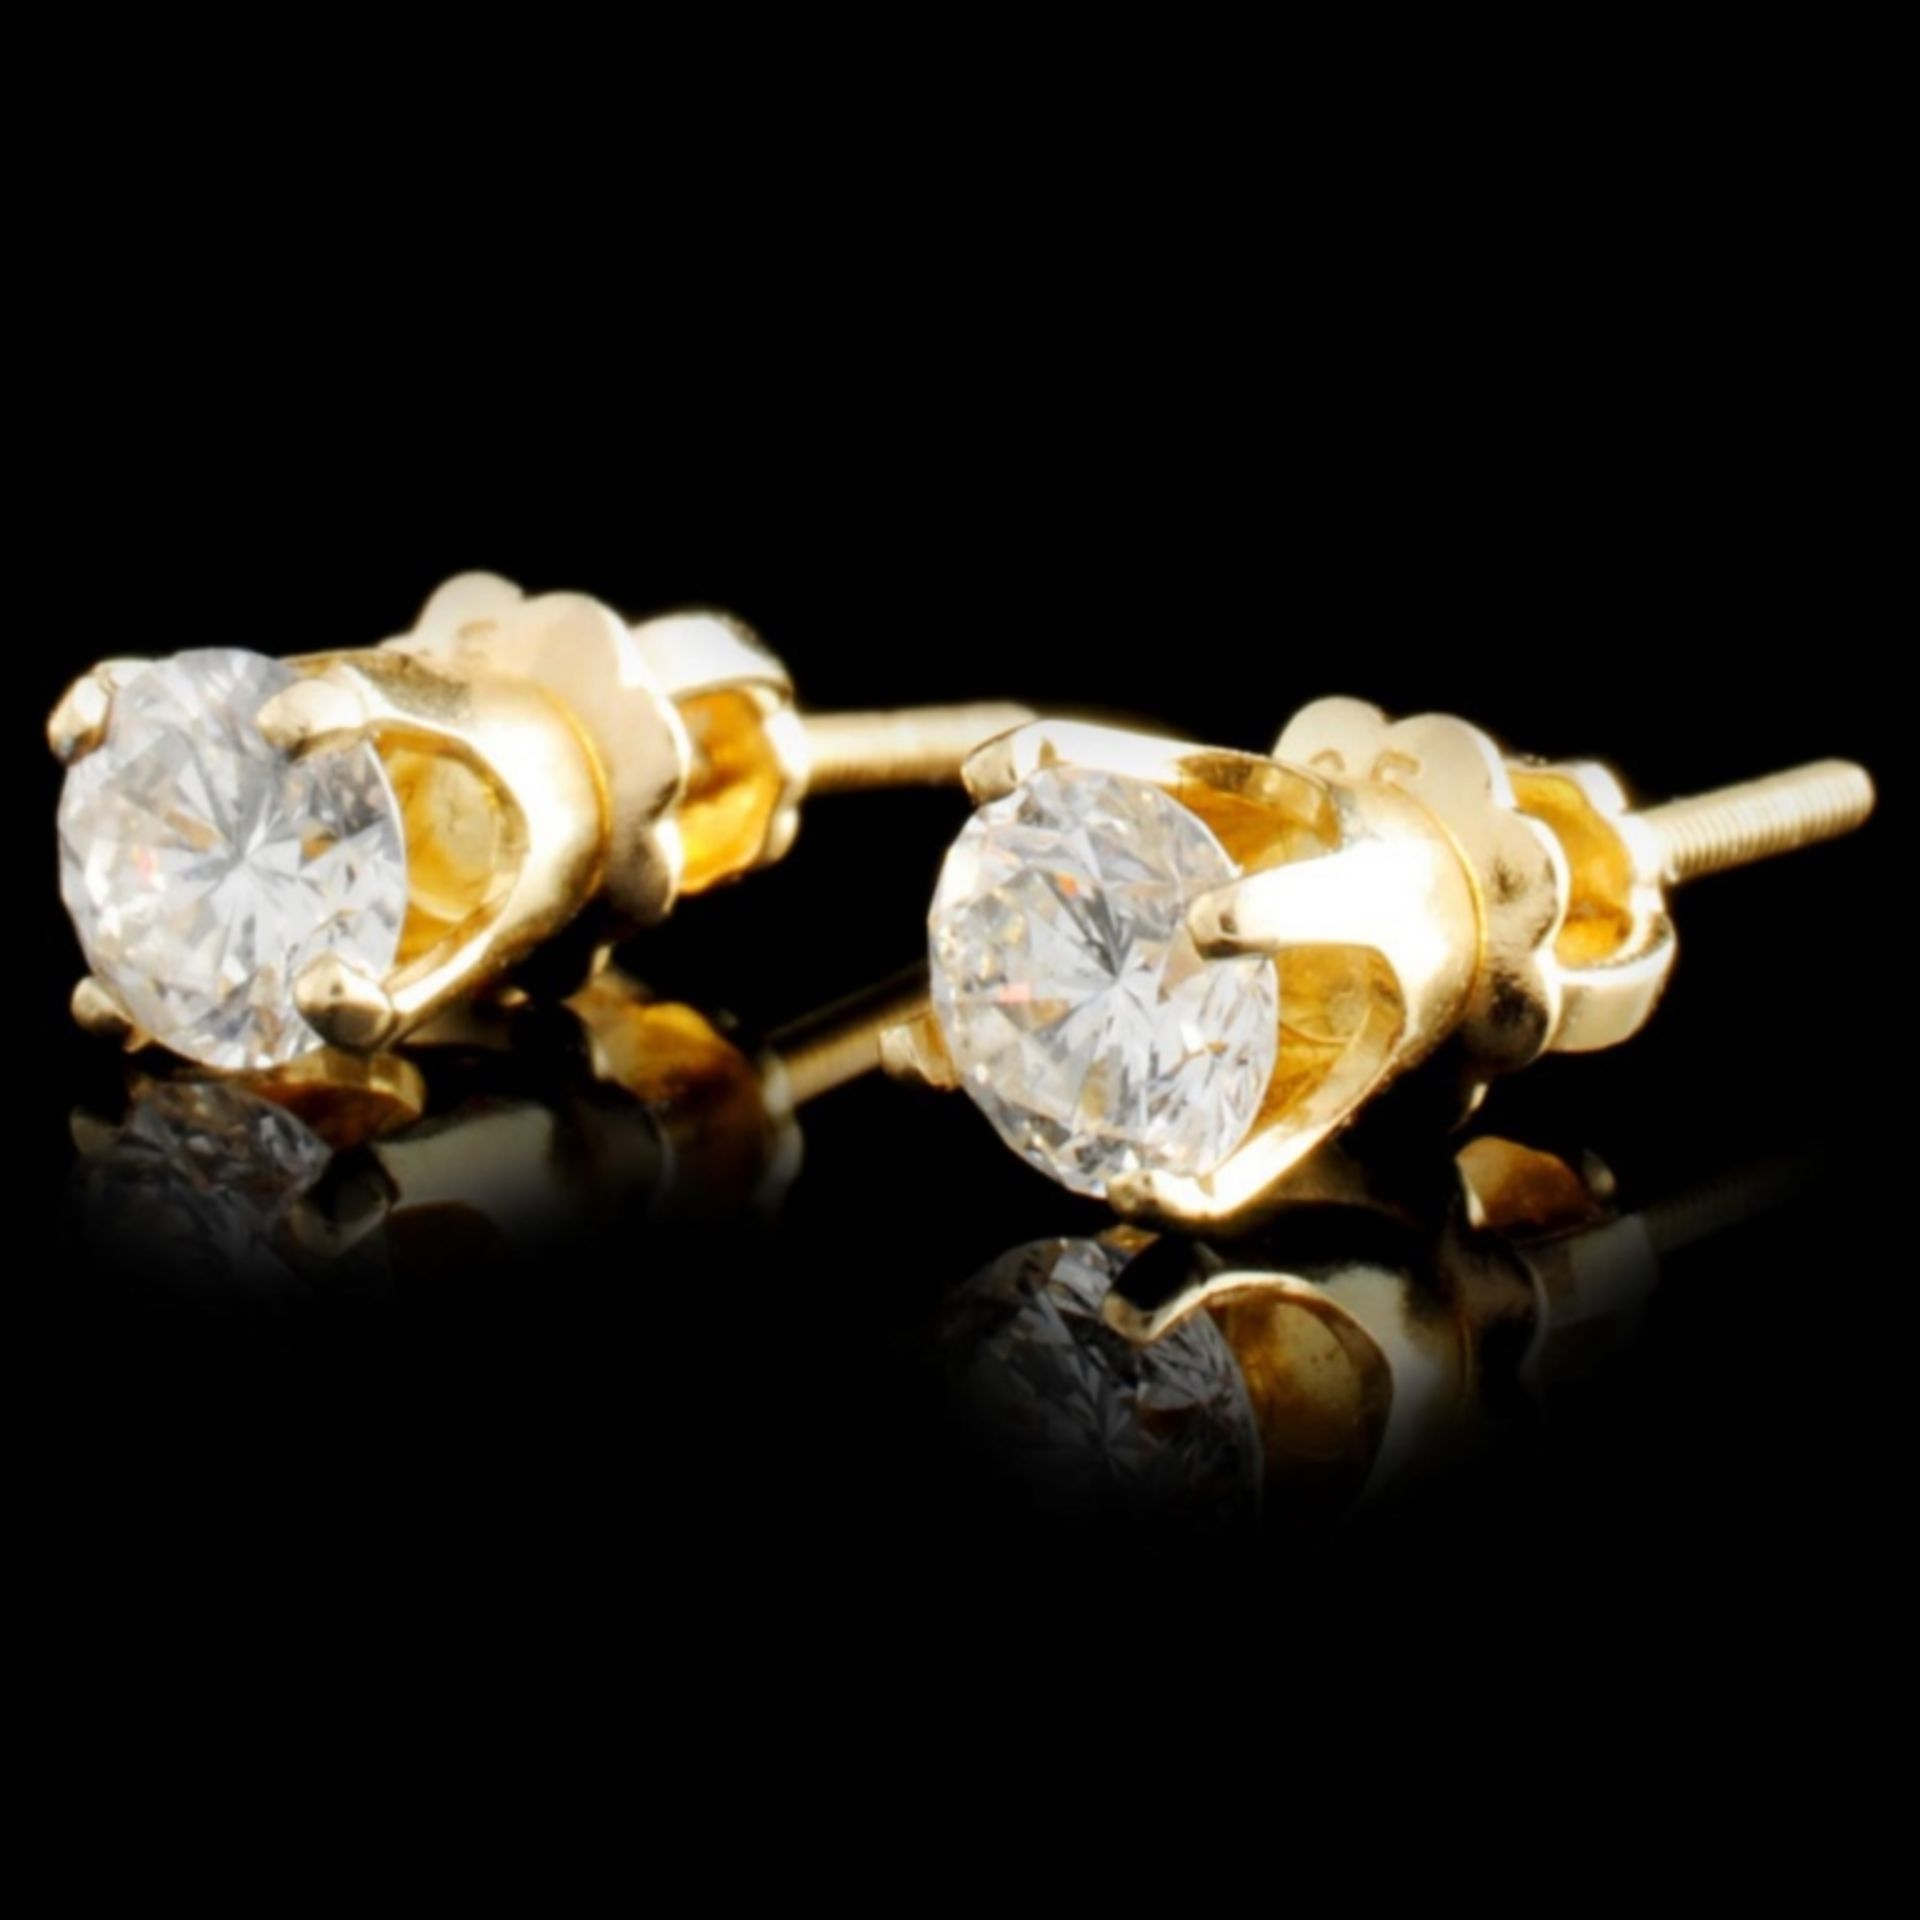 14K Gold 0.58ctw Diamond Earrings - Image 2 of 2